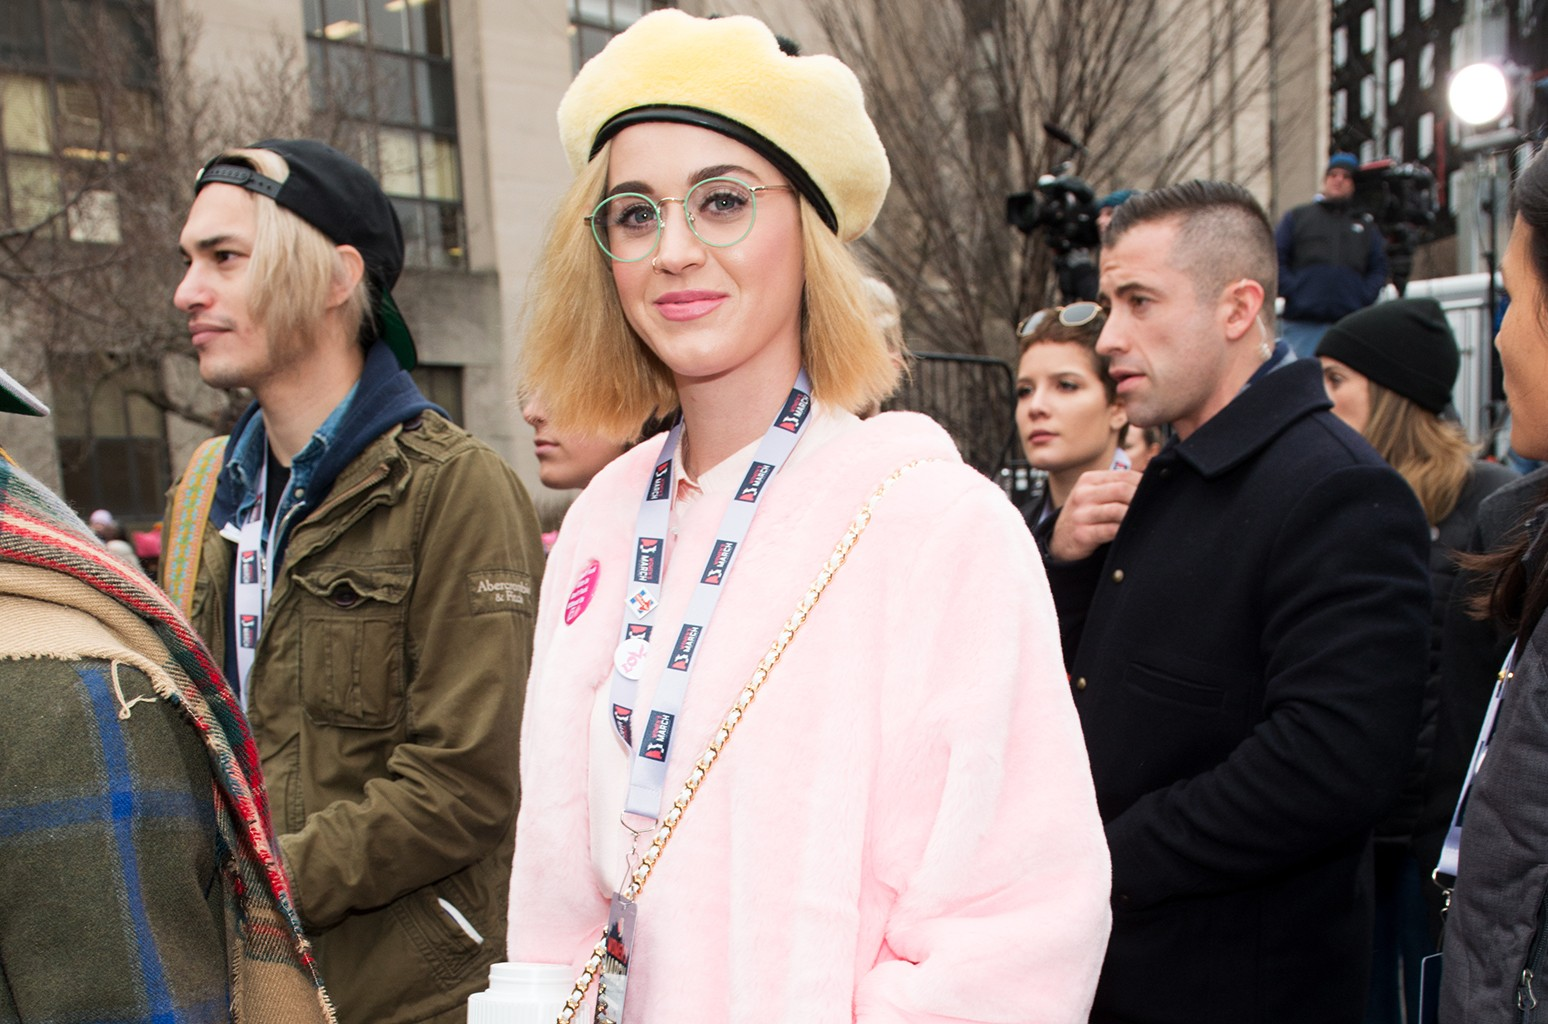 Katy Perry attends the Women's March on Washington on Jan. 21, 2017 in Washington, DC.